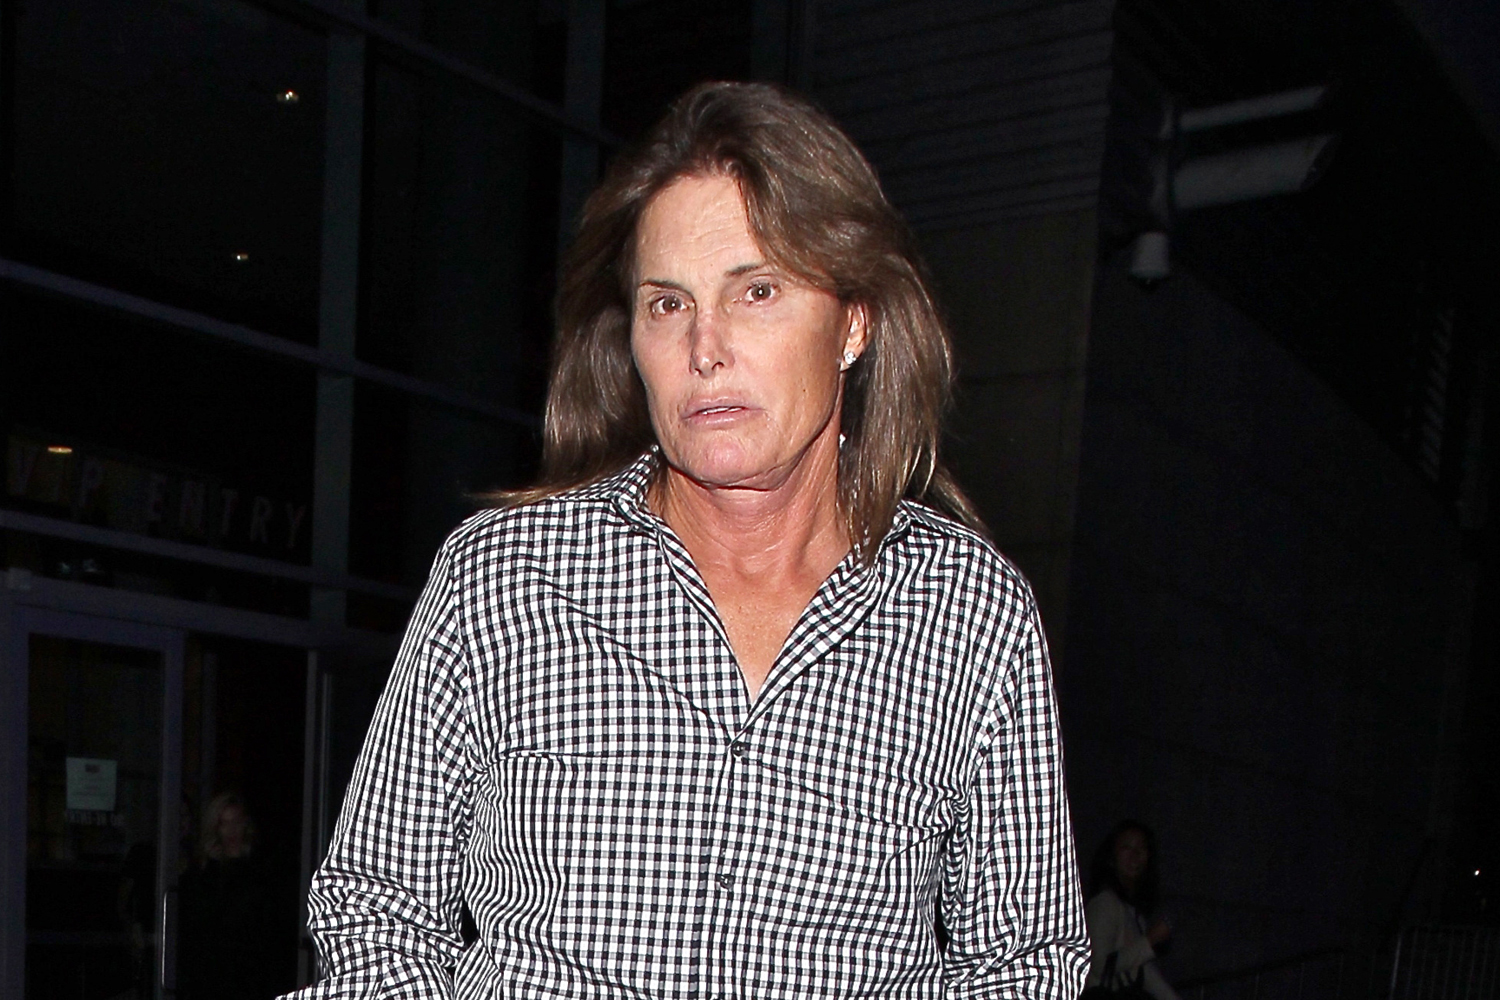 Celebrity gossip roundup bruce jenner tripping while nene leakes suing